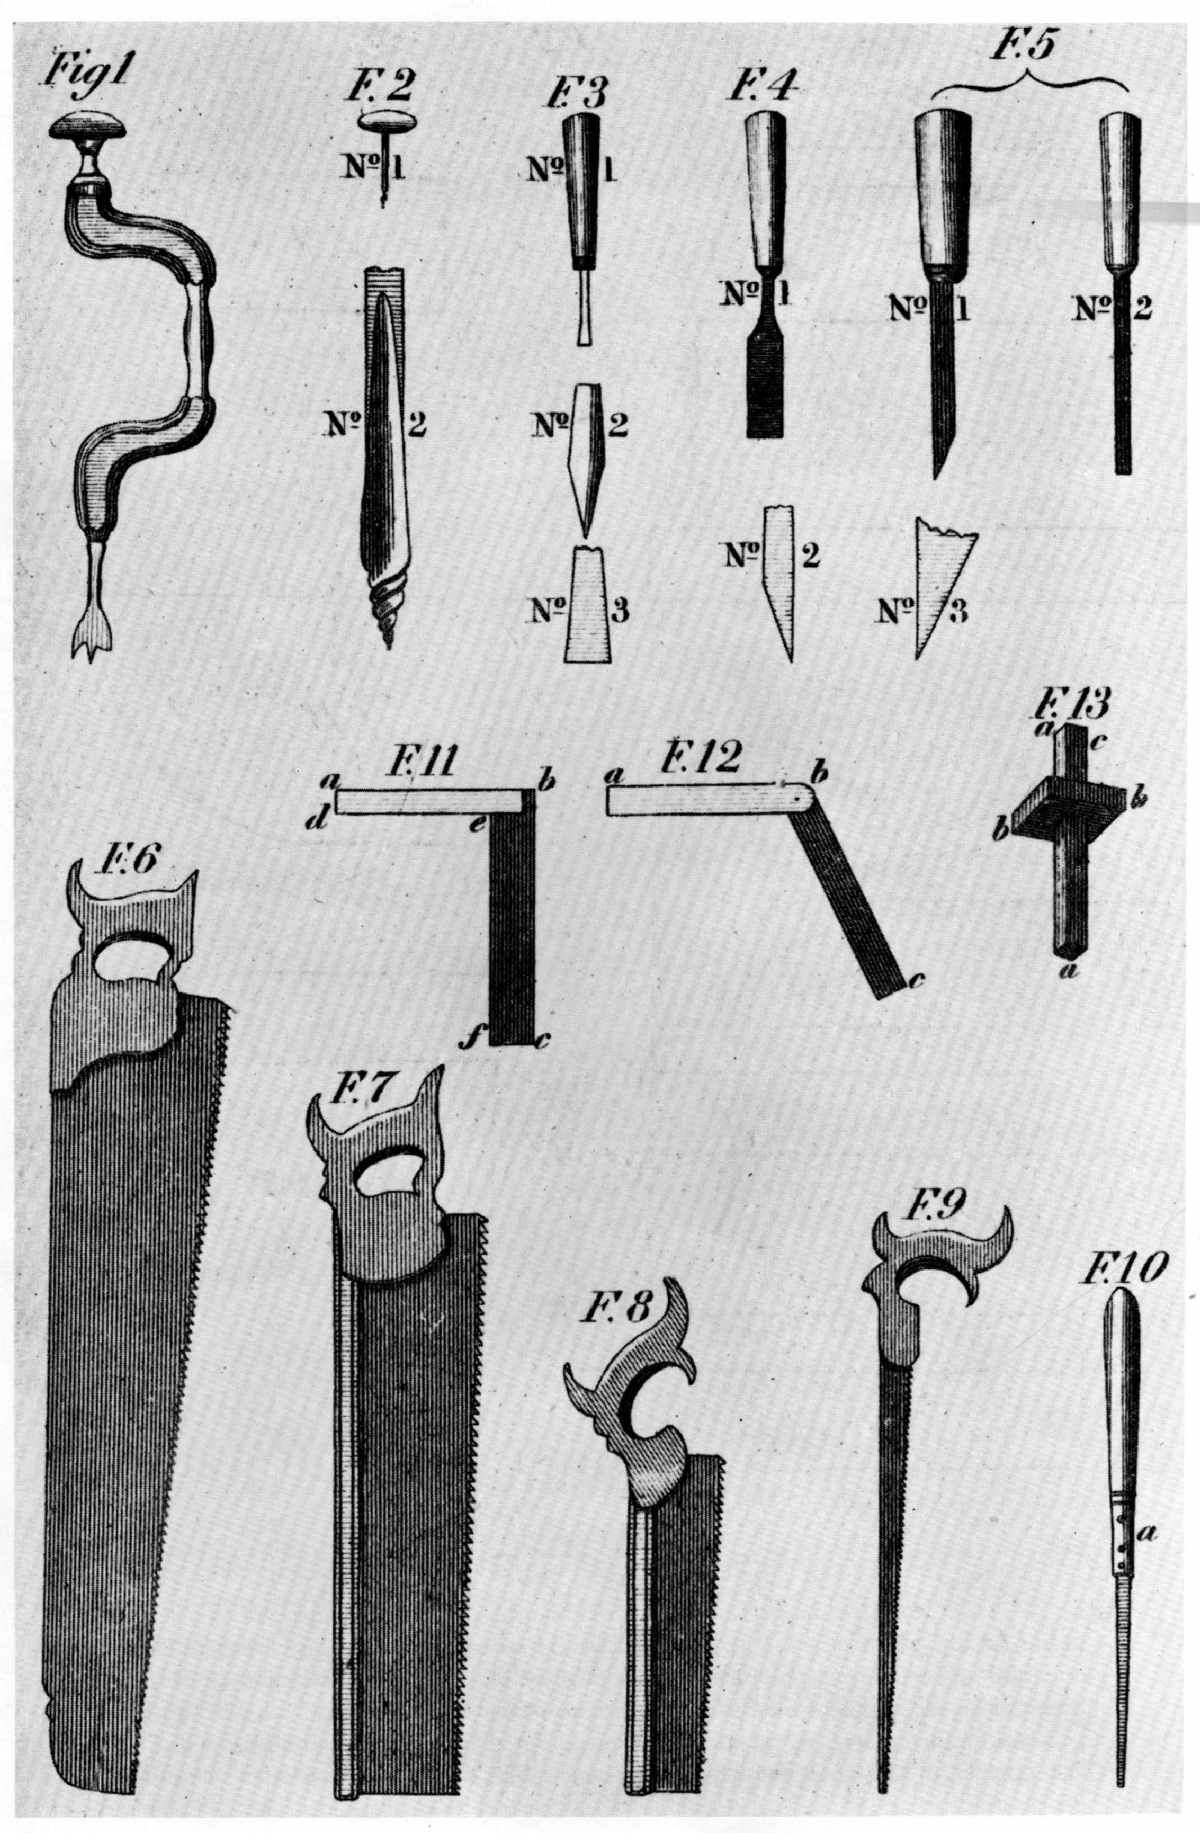 Tools » Specialization of Woodworking Tools 1600-1900 | woodworking ...